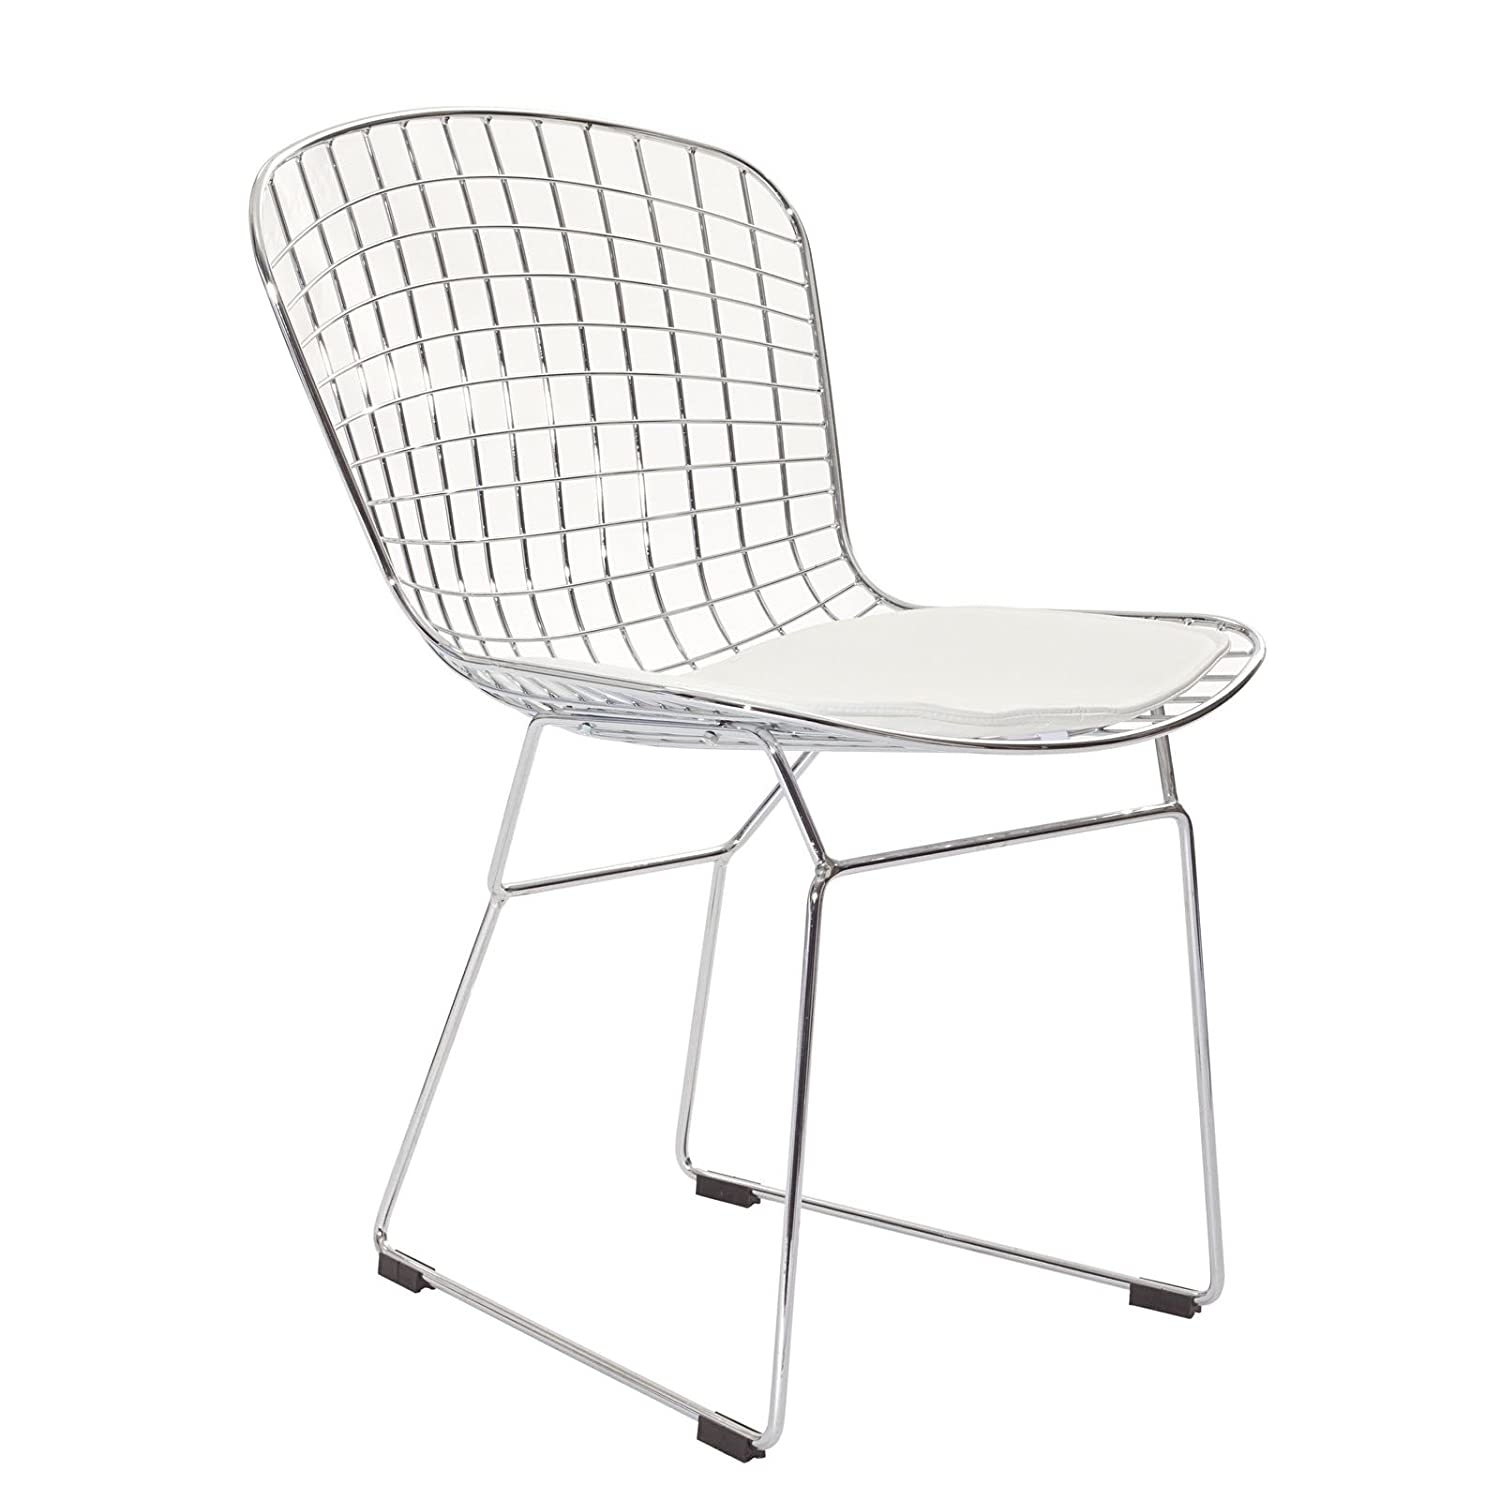 Bertoia chair white - Amazon Com Modway Bertoia Style Side Chair With White Cushion Chairs